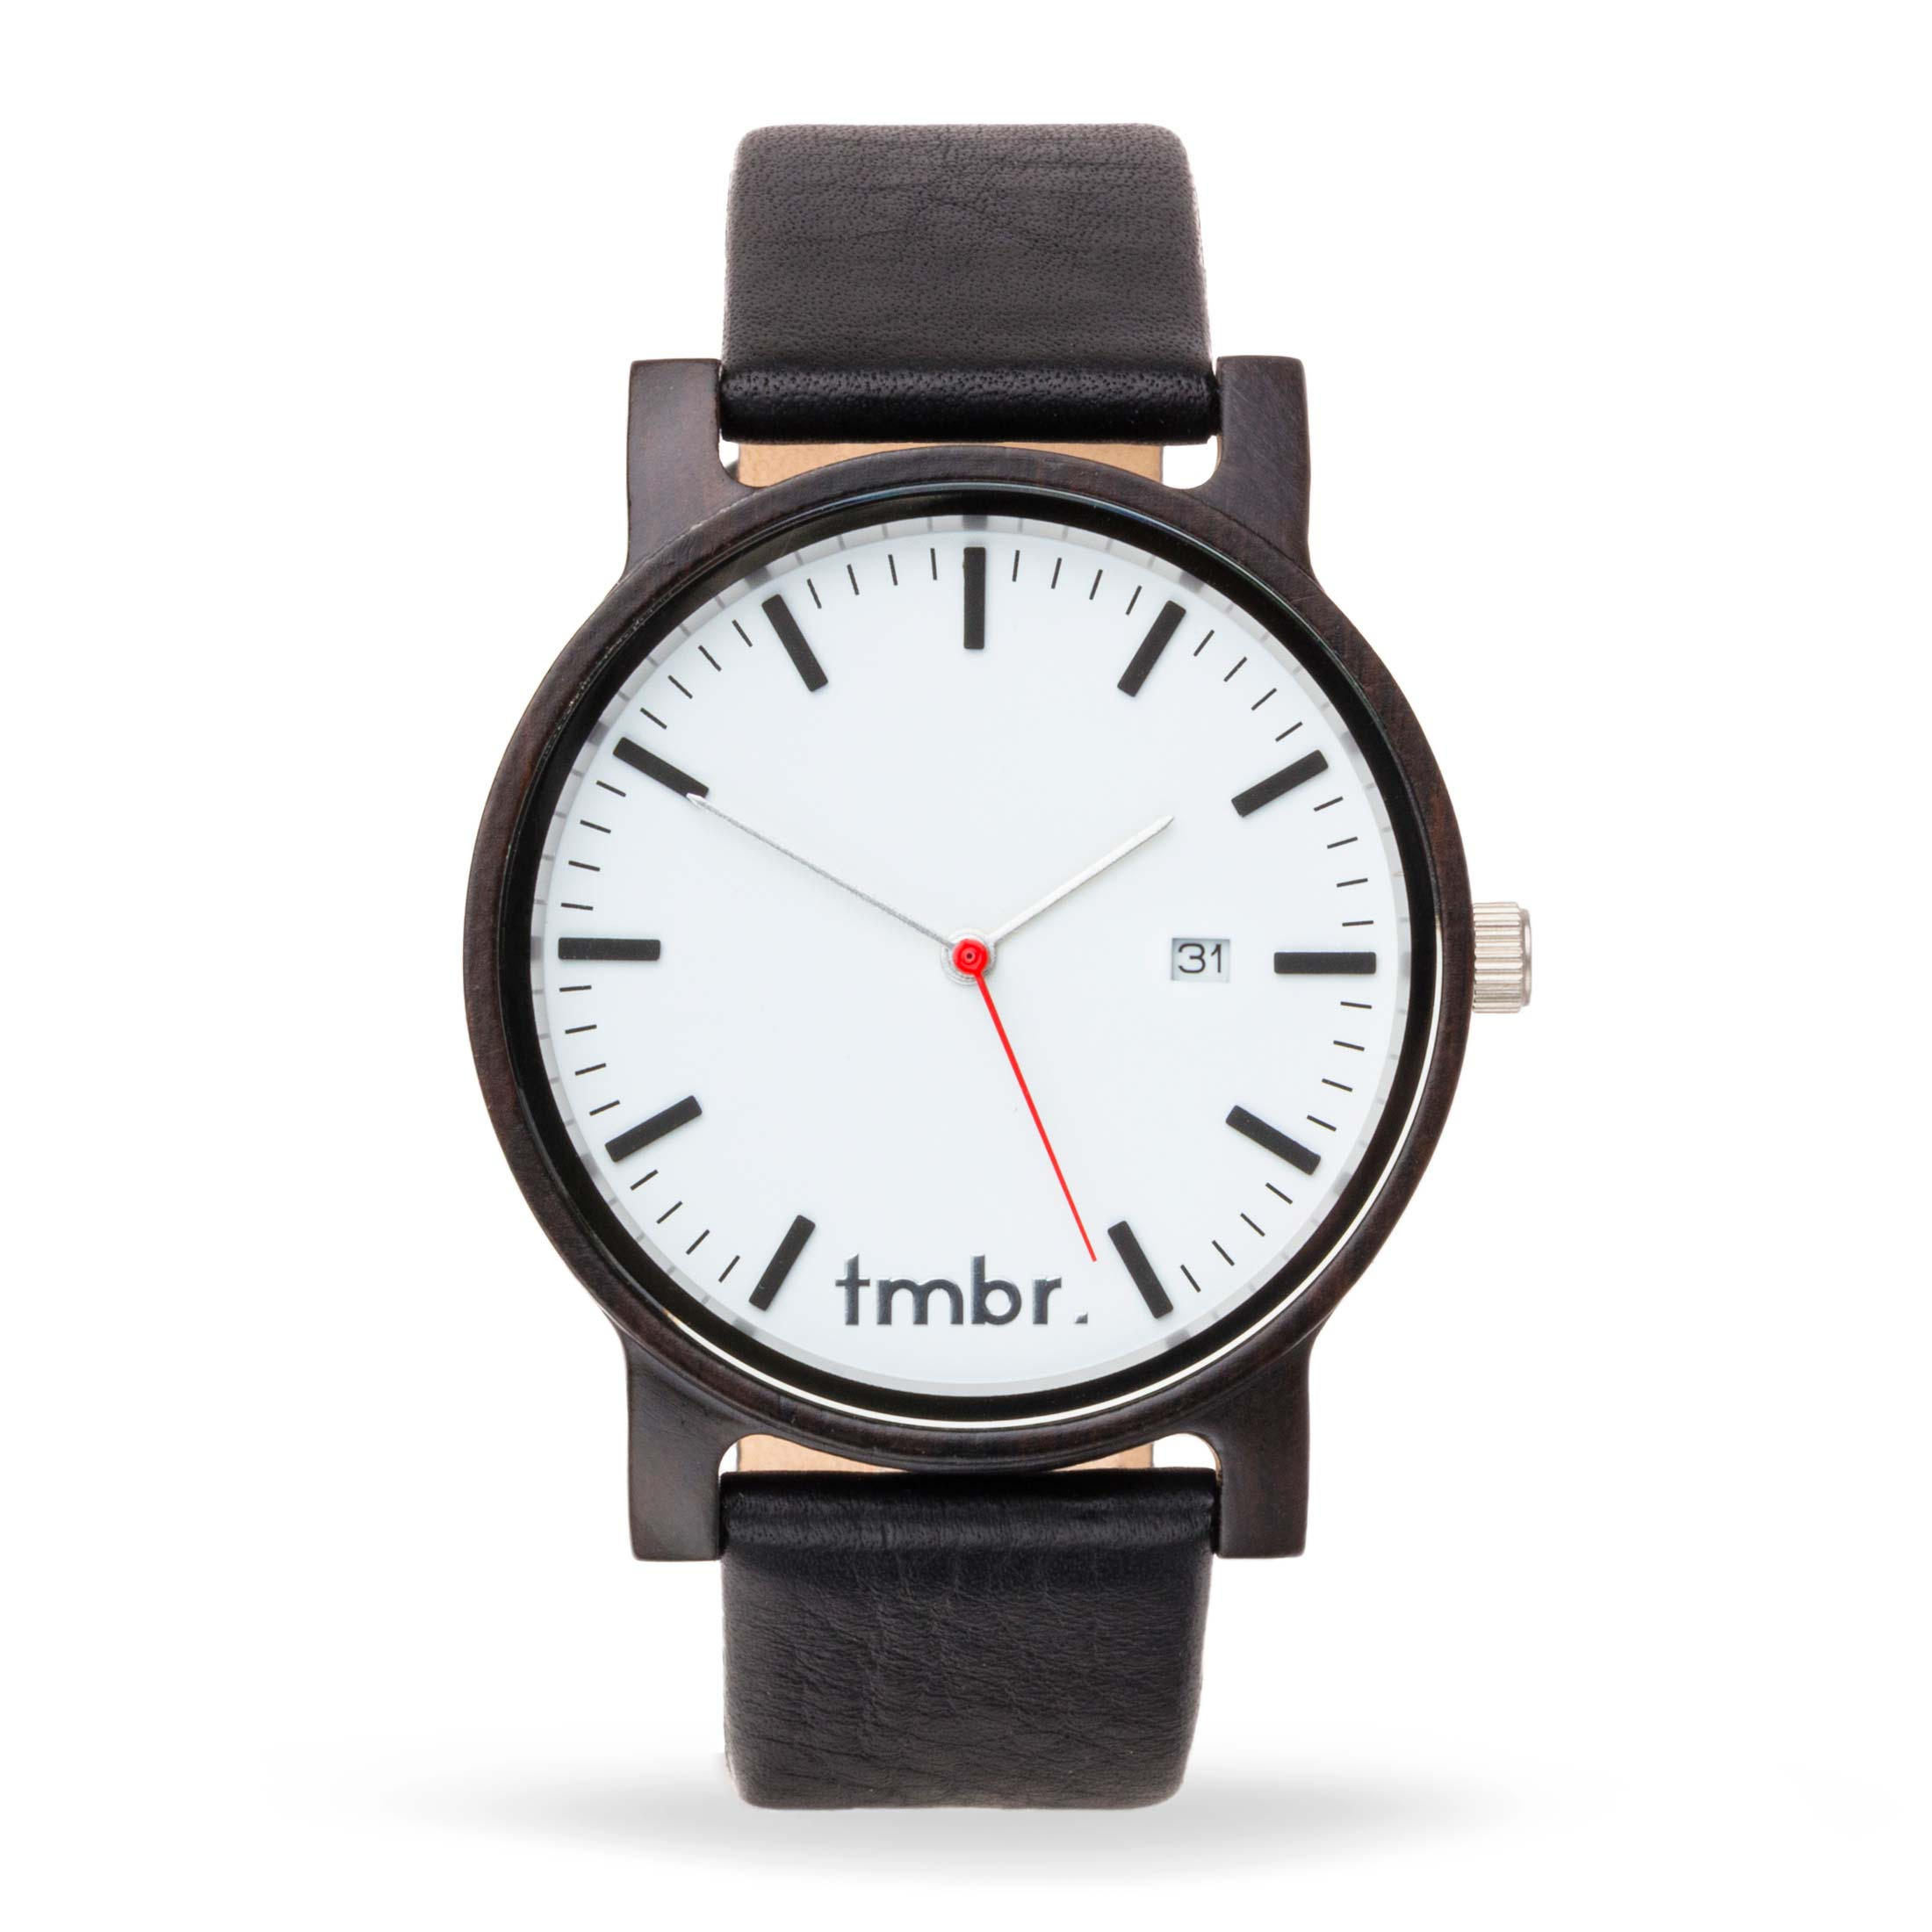 Tmbr Journeyman Wooden Watch - Cascade White